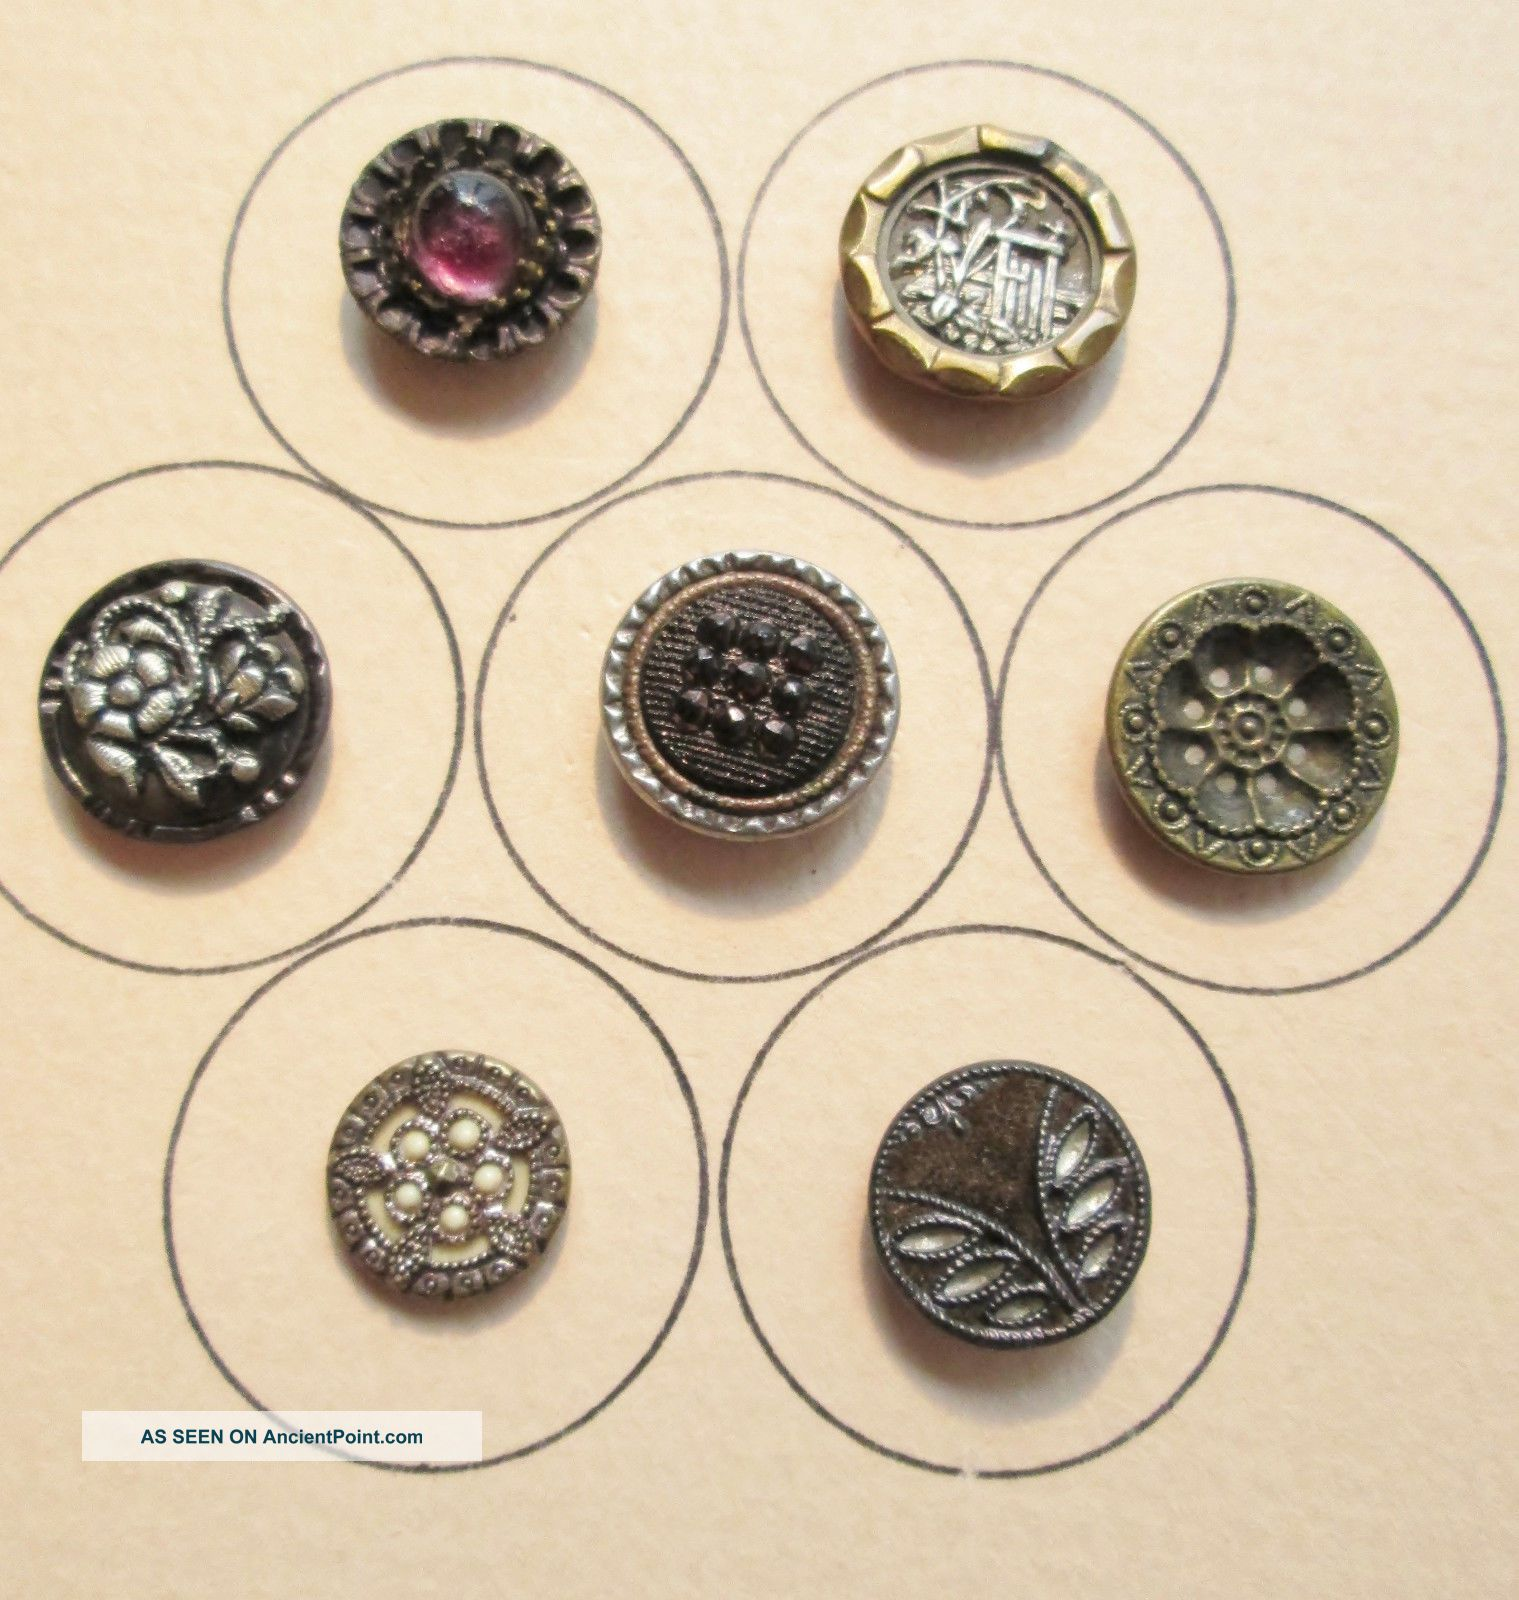 7 Sm Victorian Era Buttons Ivoroid,  Twinkle,  Perfume,  Pigeon Eye,  Piecture,  Etc. Buttons photo